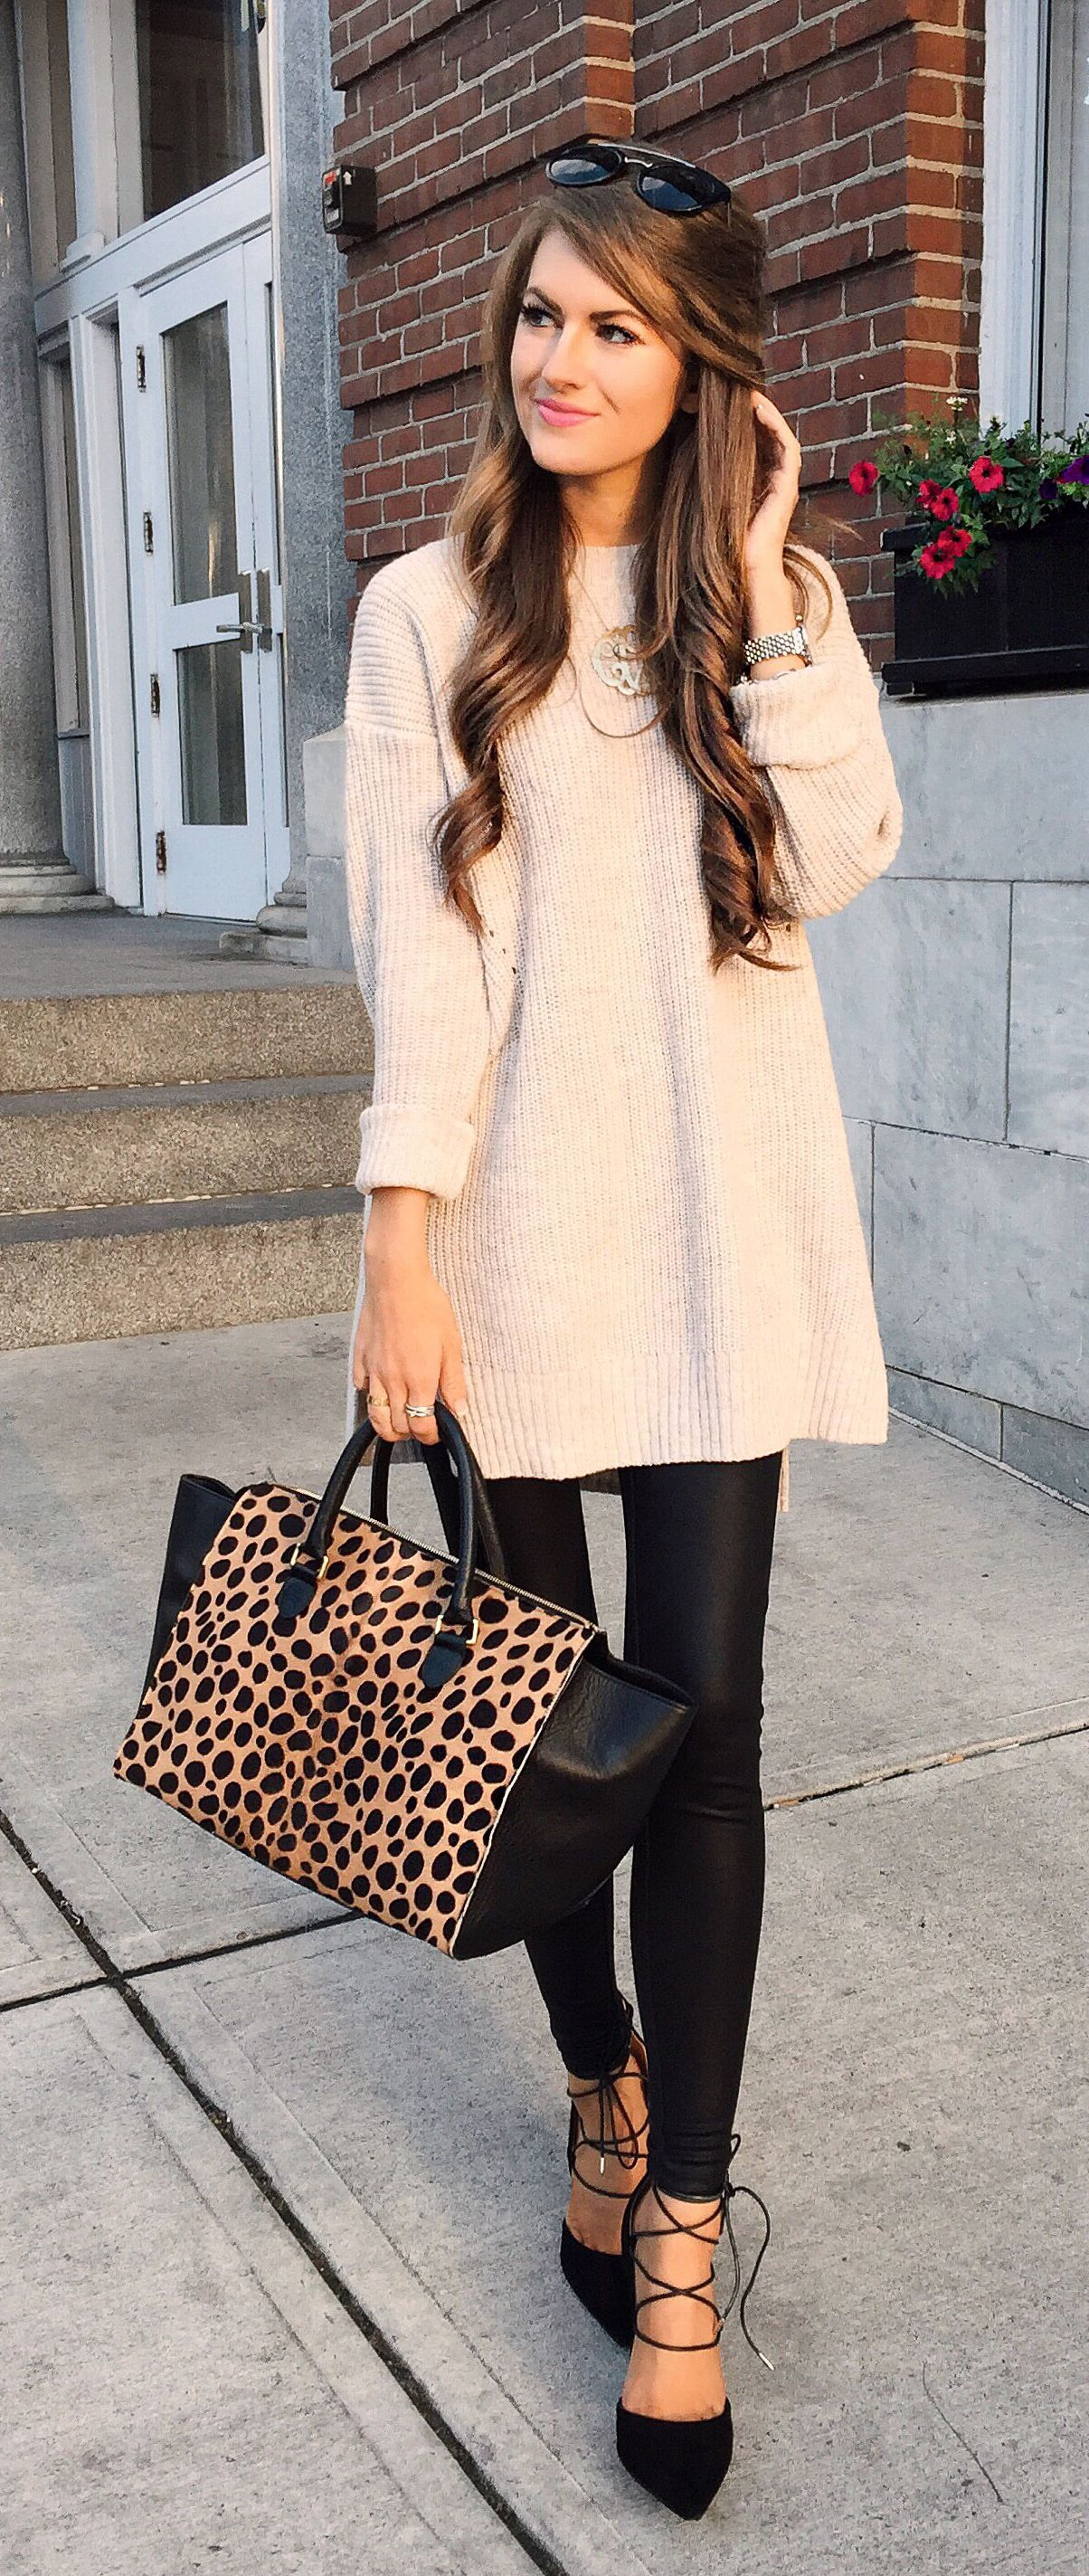 c8f7a455bf280 faux leather leggings + oversized sweater